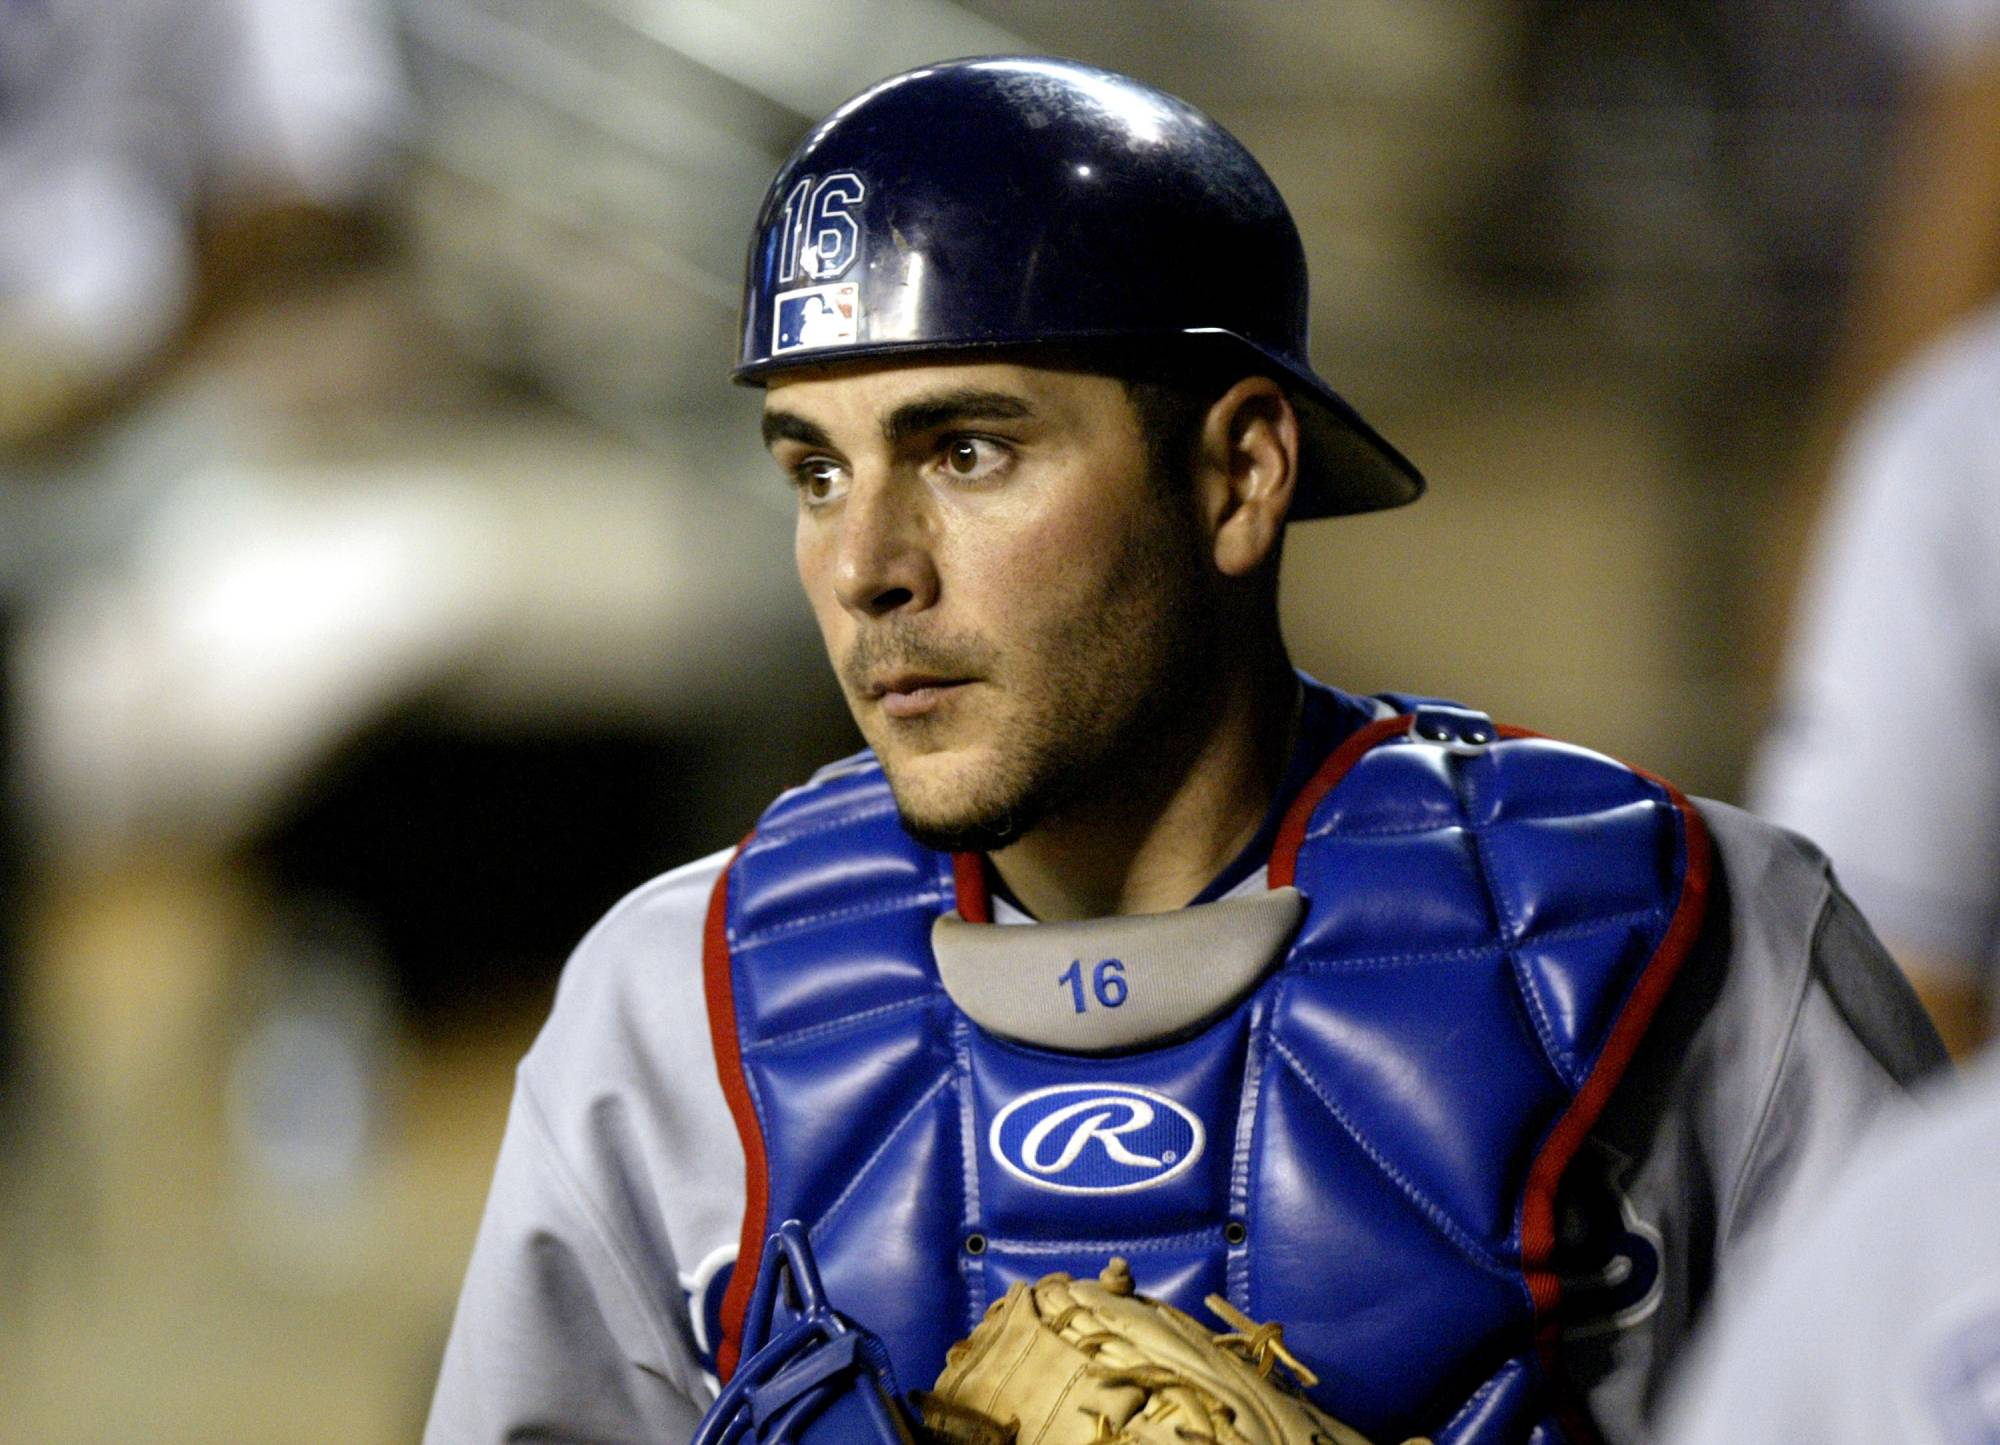 Longtime MLB catcher Paul Lo Duca made four All-Star Games in 11 seasons. Lo Duca now contributes to Barstool Sports.